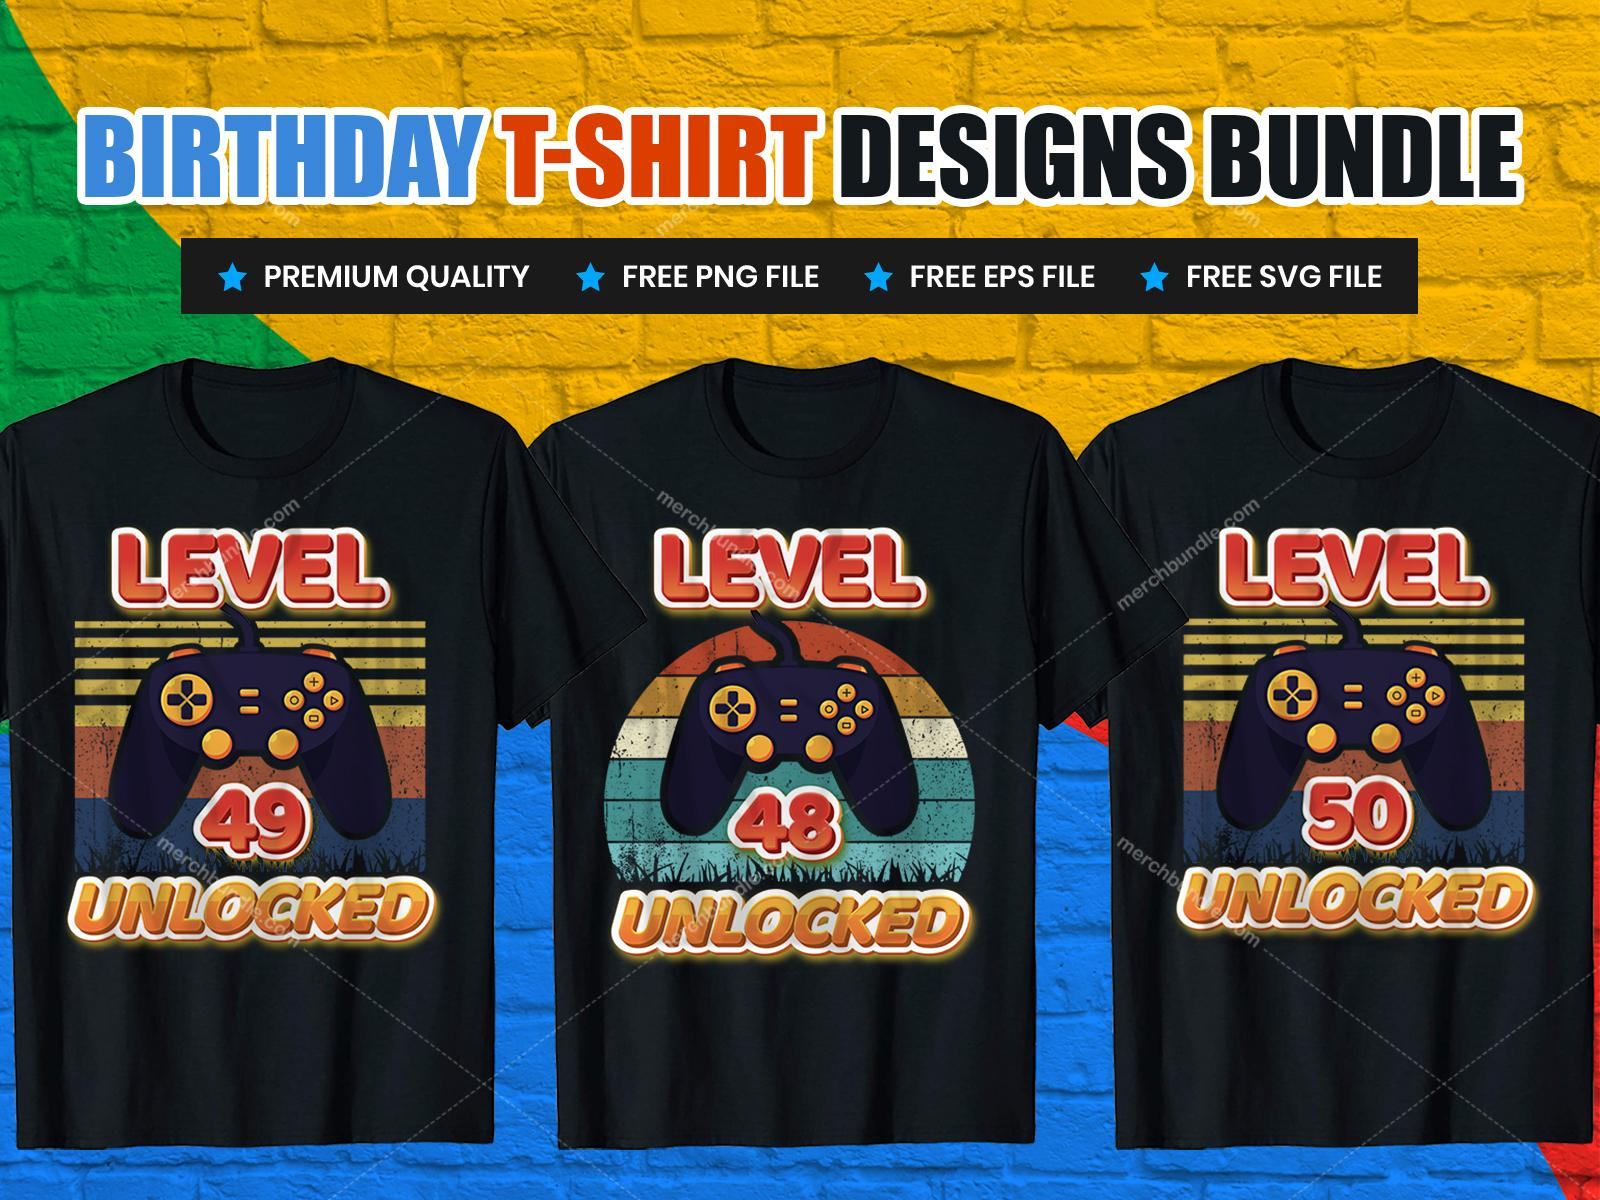 Happy Birthday T-Shirt Design